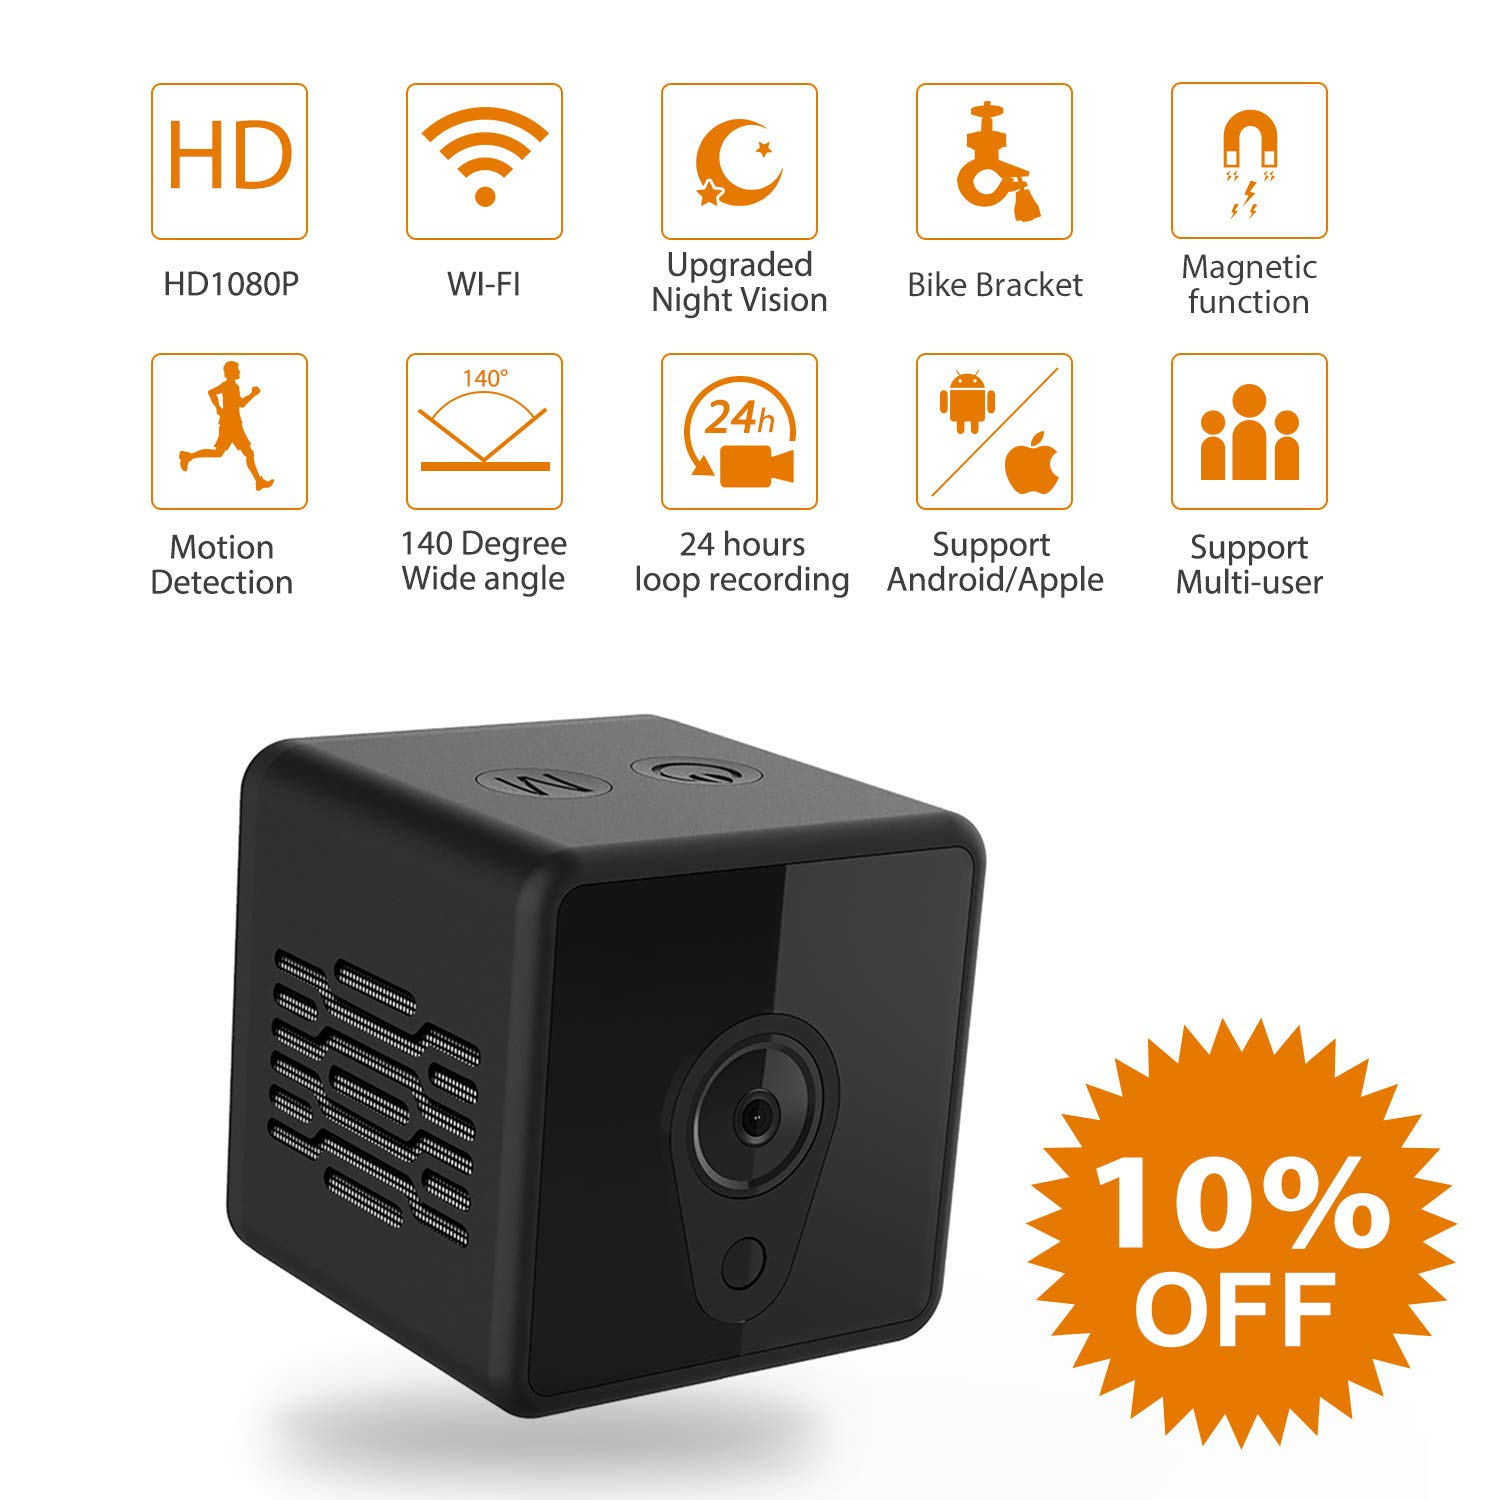 Mini Spy Camera WiFi, Jayol 1080P Spy Hidden Camera Upgraded Night Vision and Motion Detection Spy Cam, Portable Nanny Camera for Home/Office Security and Outdoor (with Cell Phone App)